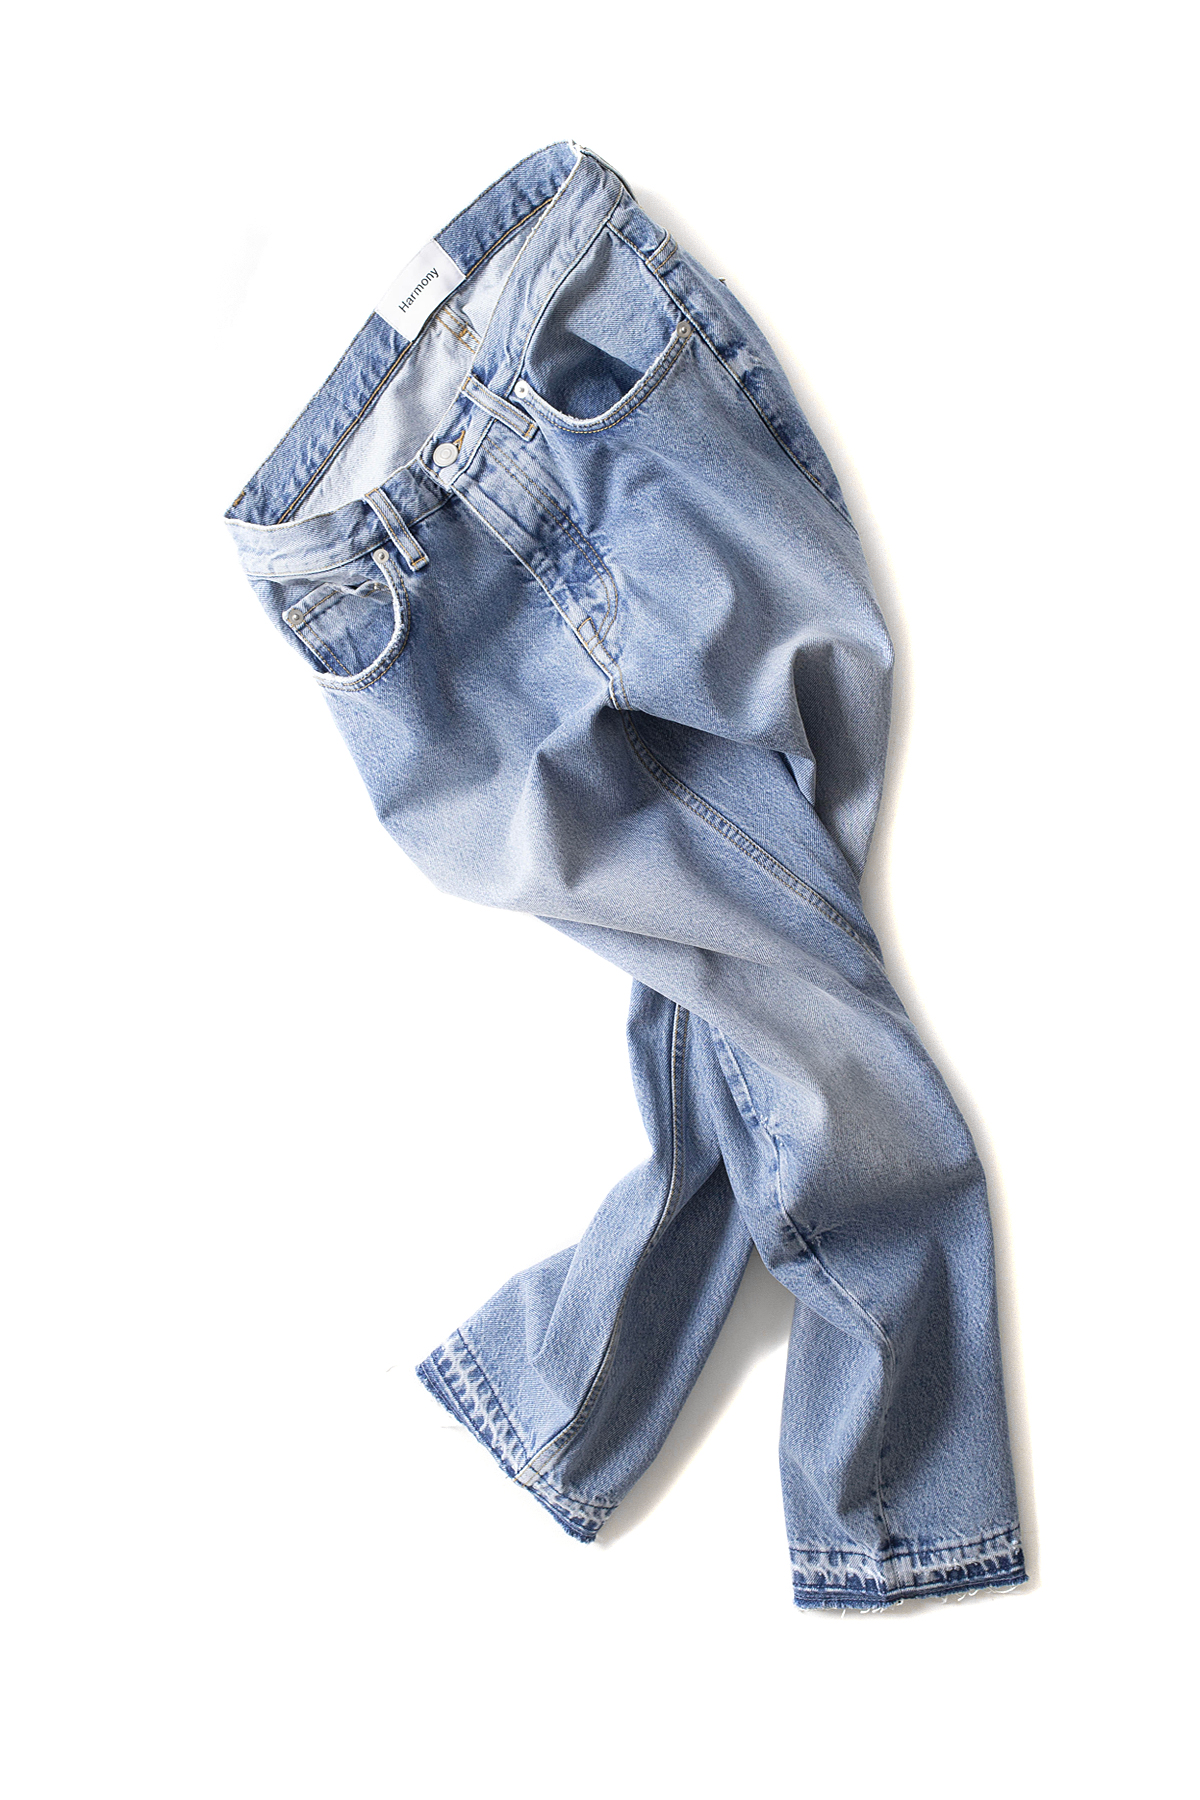 HARMONY : Dorian Denim (L.Blue)